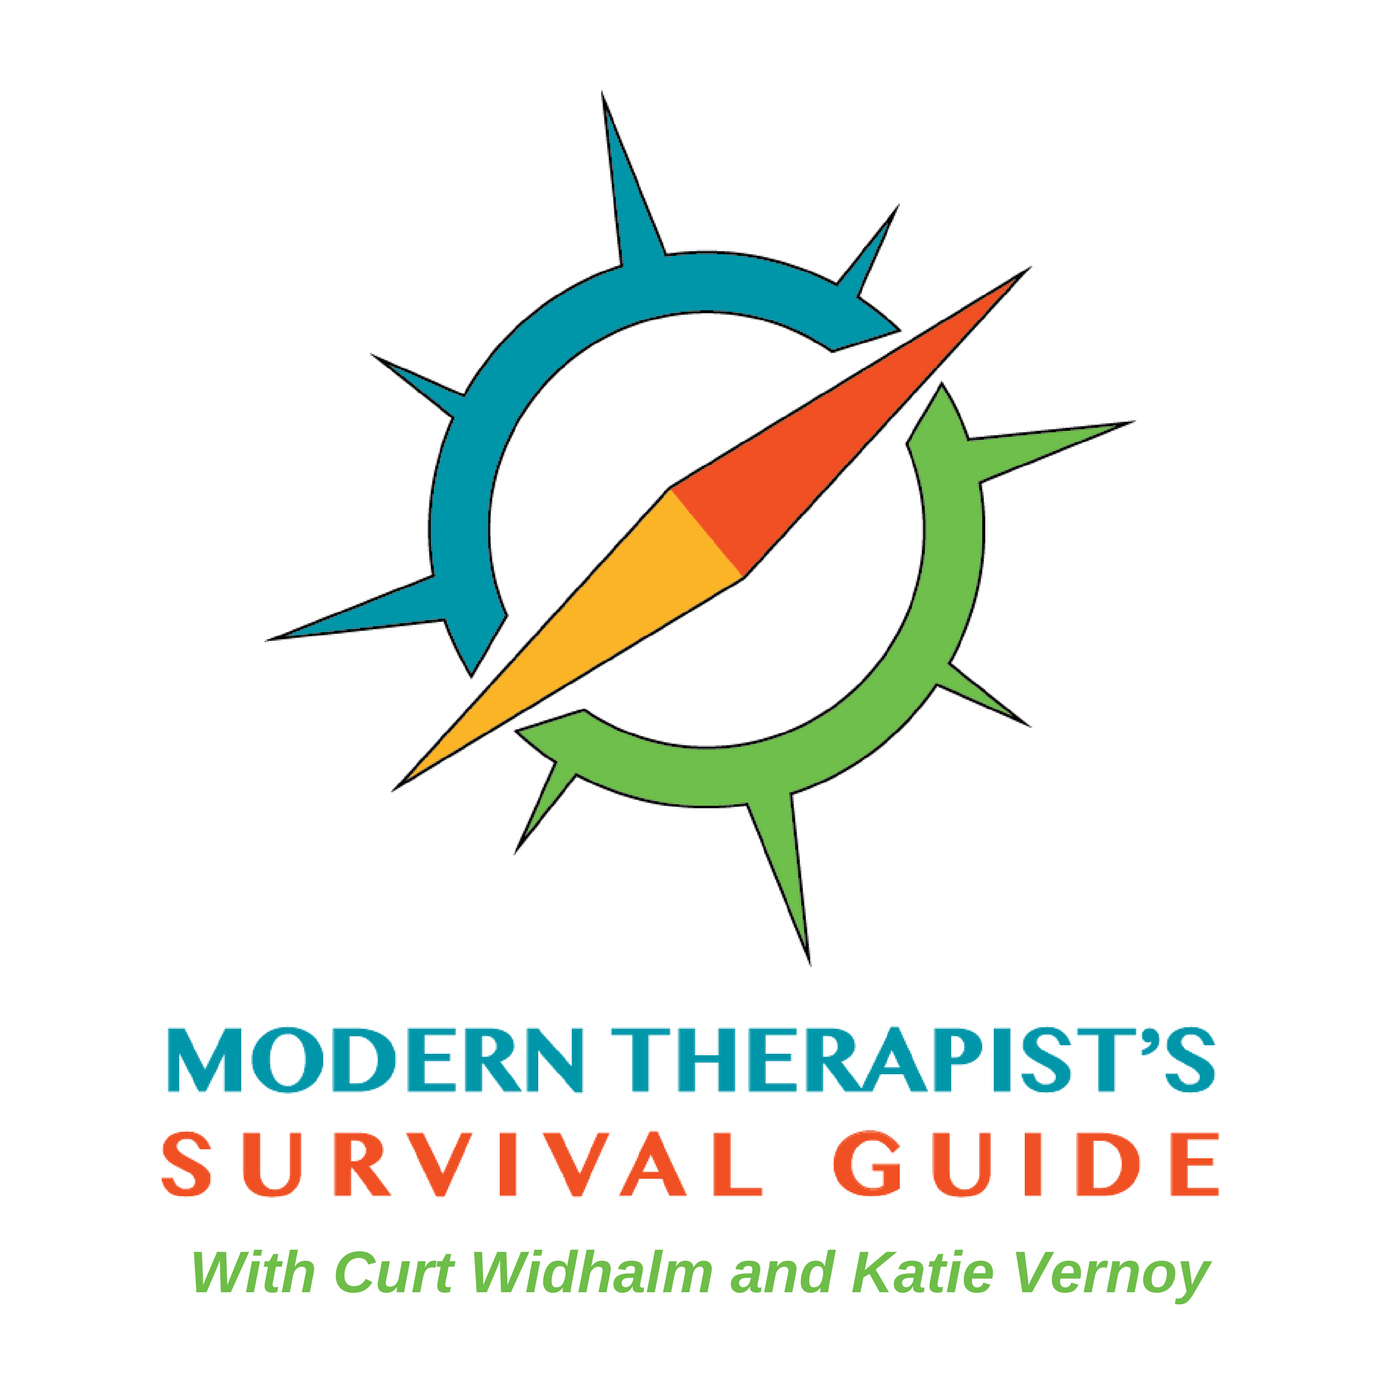 The Modern Therapist's Survival Guide with Curt Widhalm and Katie Vernoy